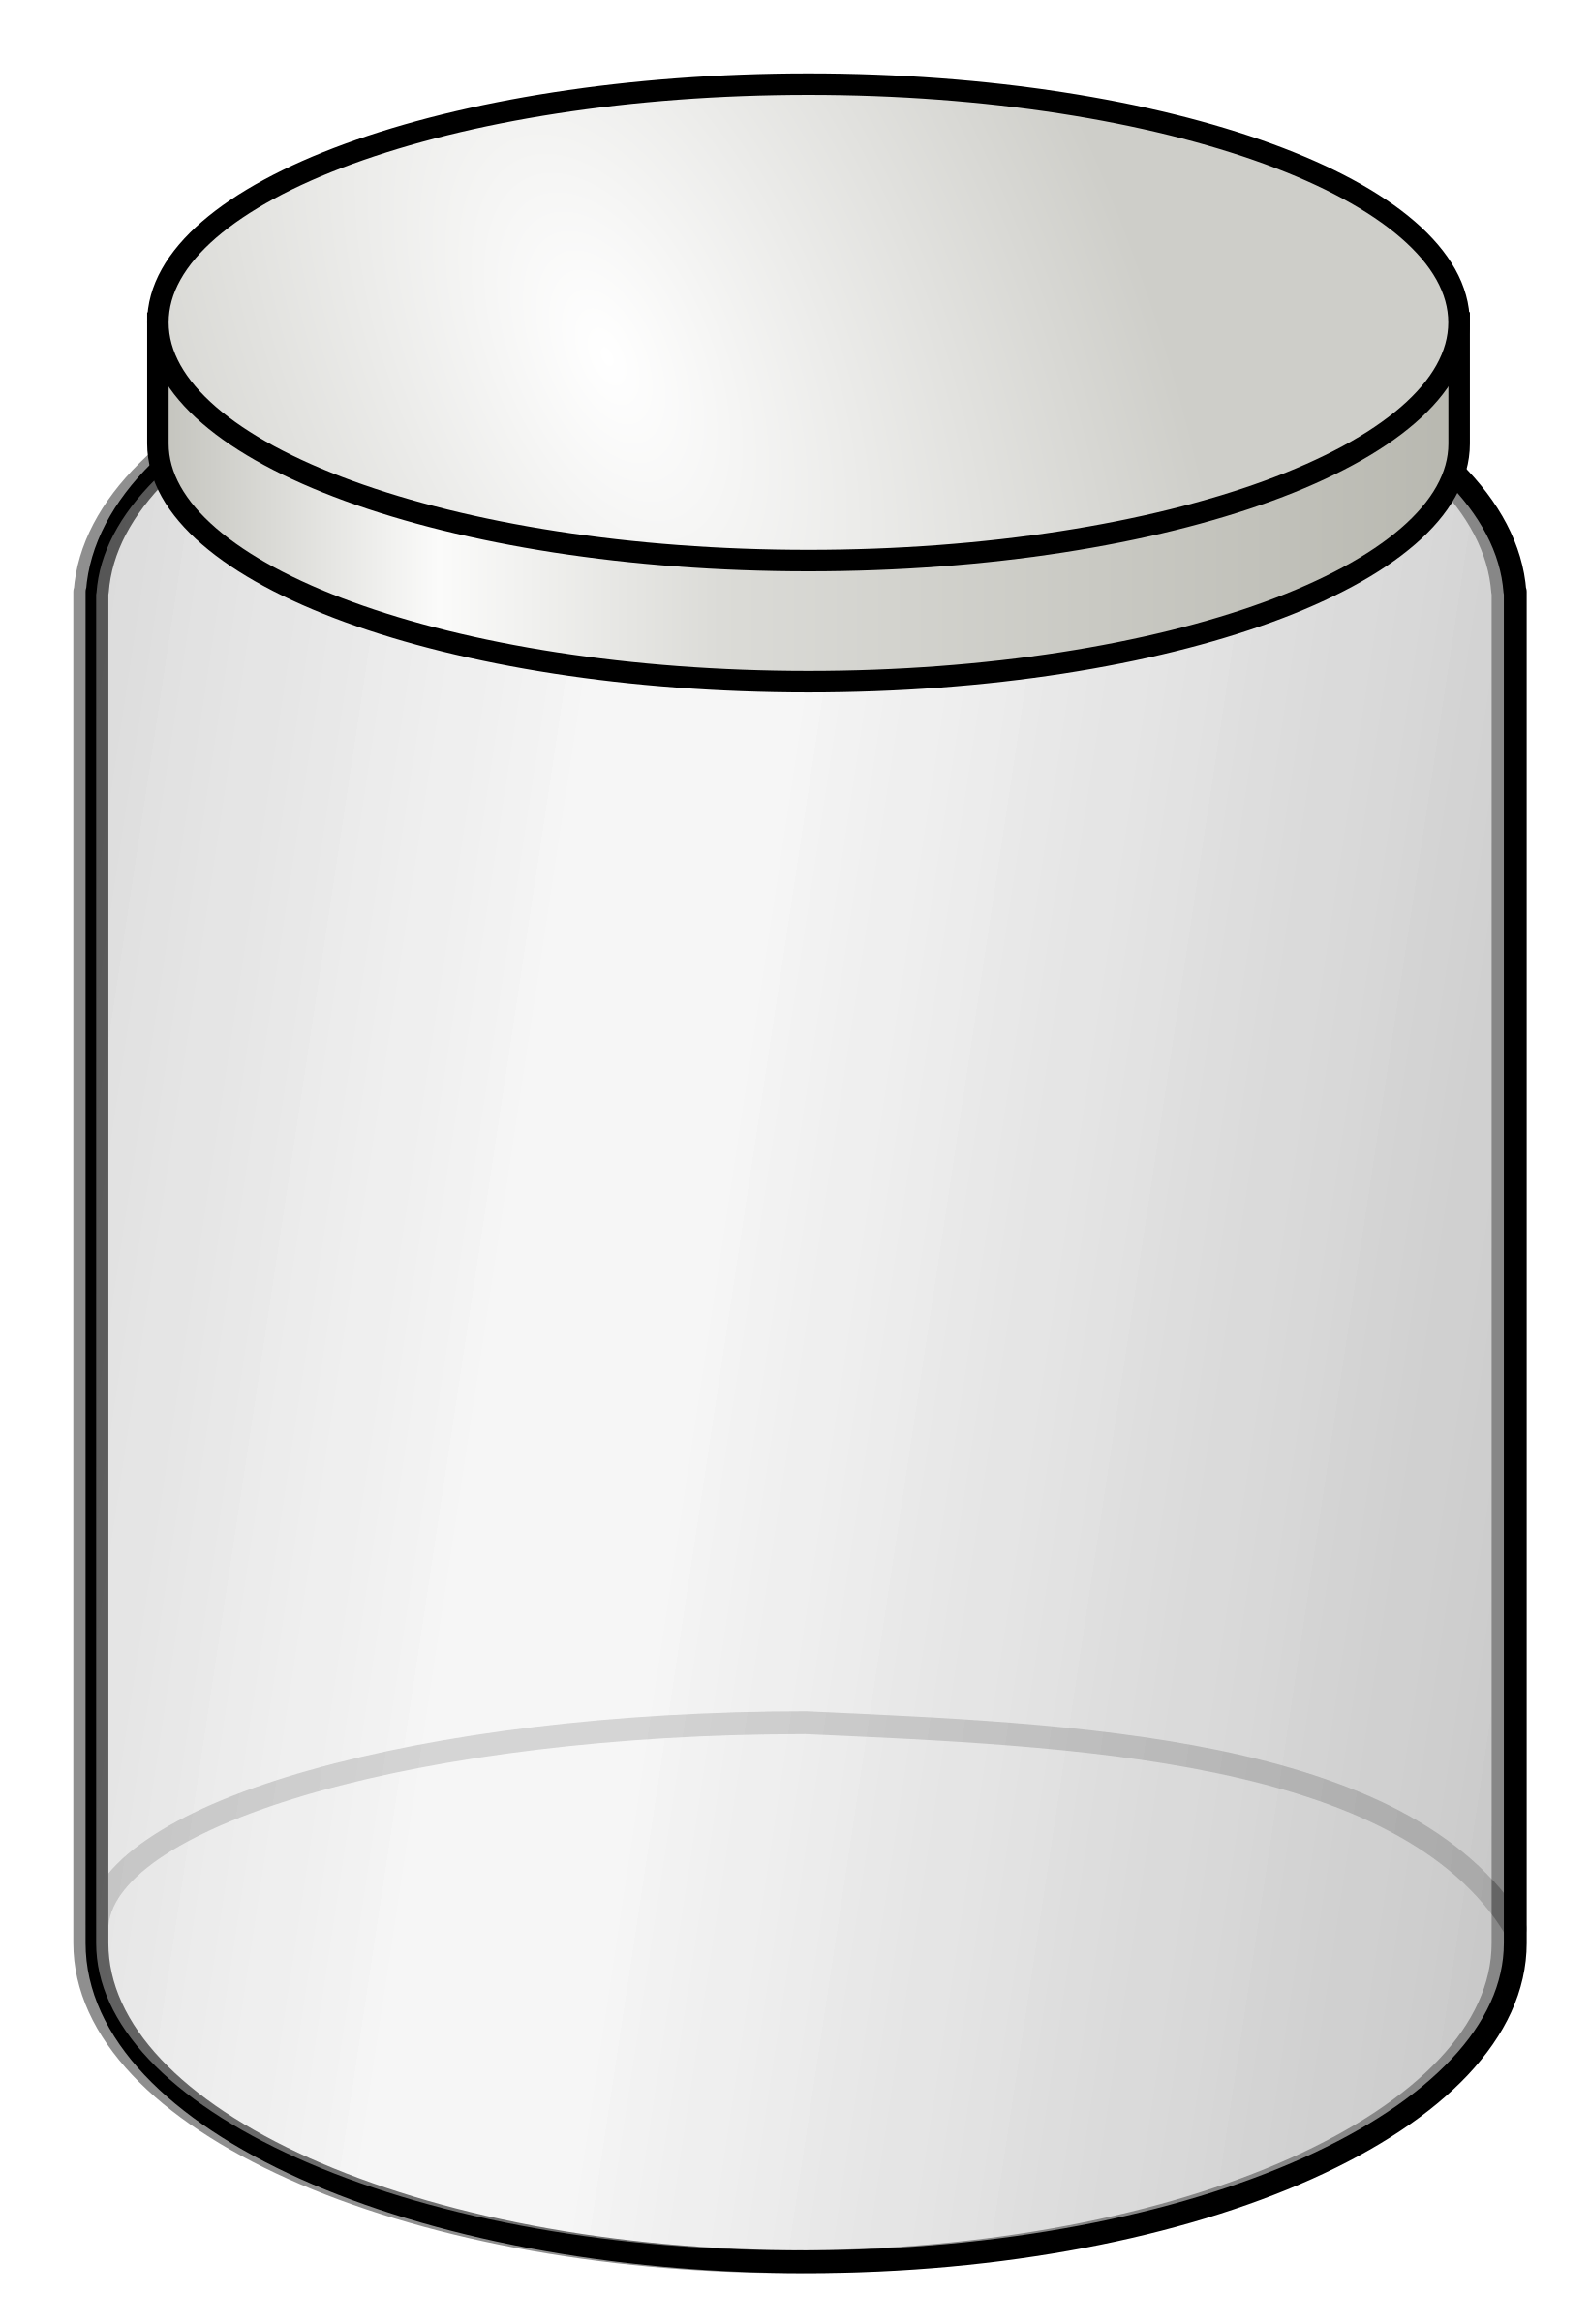 Jar transparent animated. Glass vector library